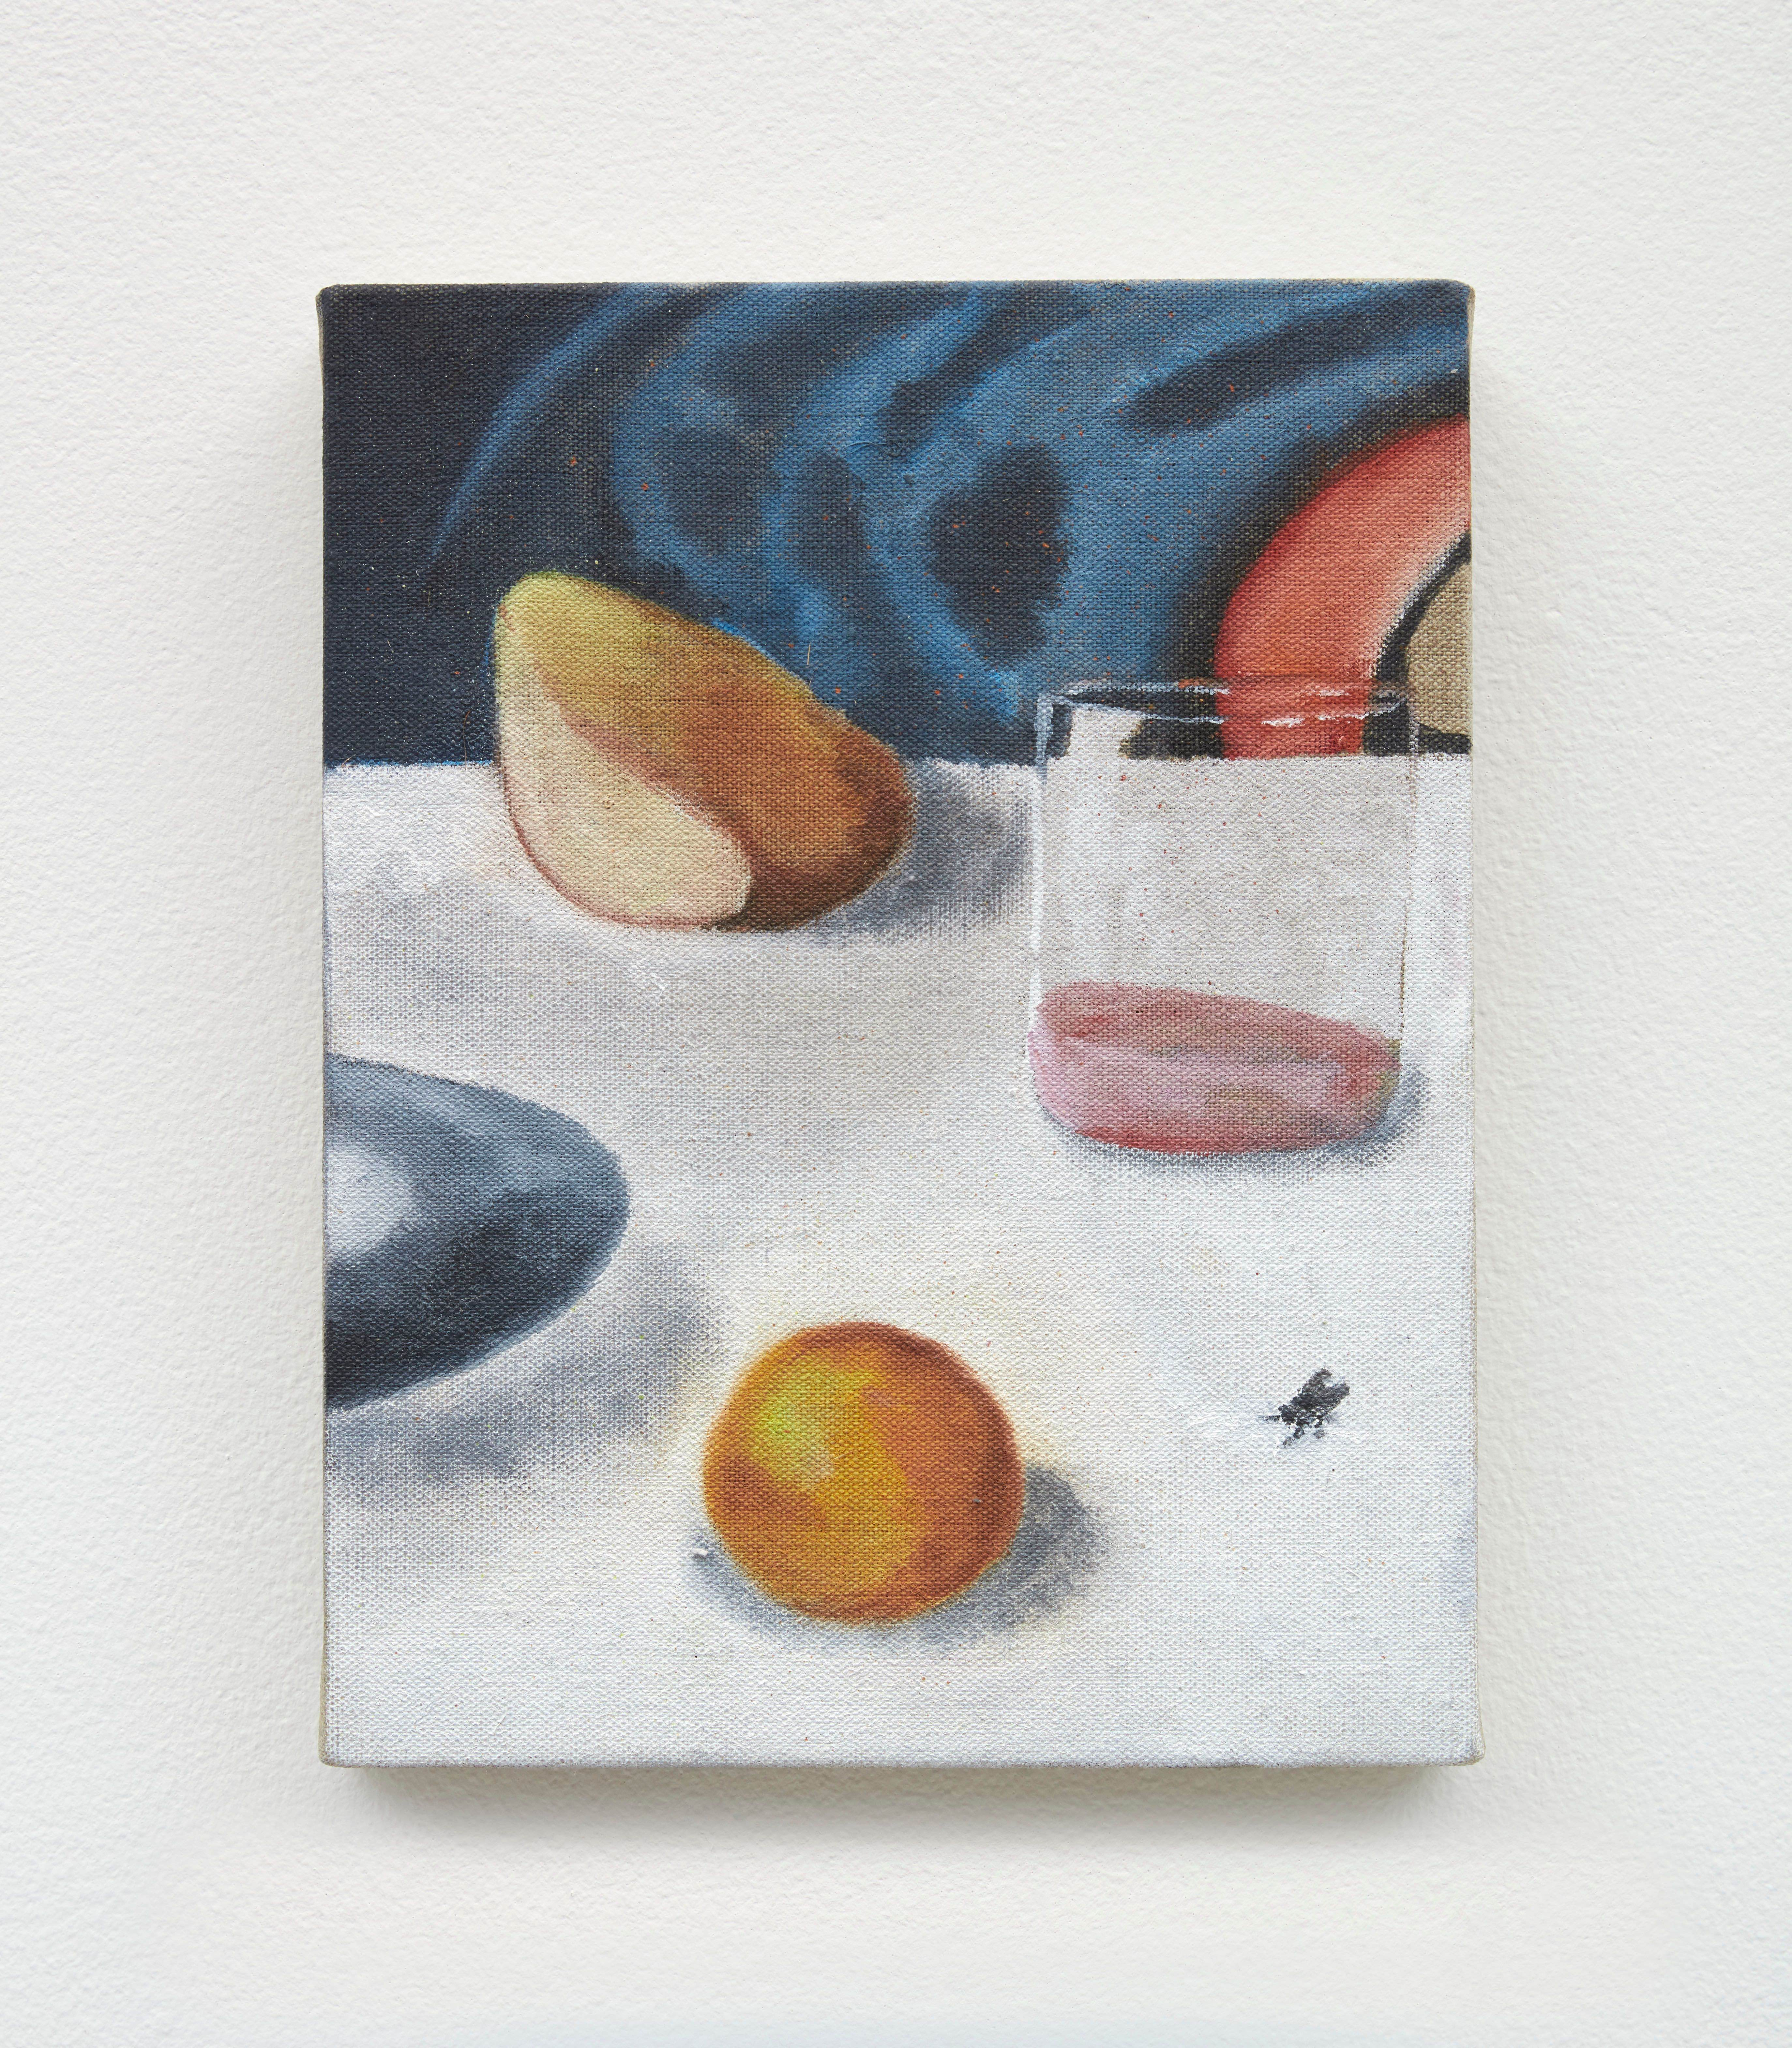 Supper, 2020 Oil on linen 11 x 8.5 inches 27.94 x 21.59 cm